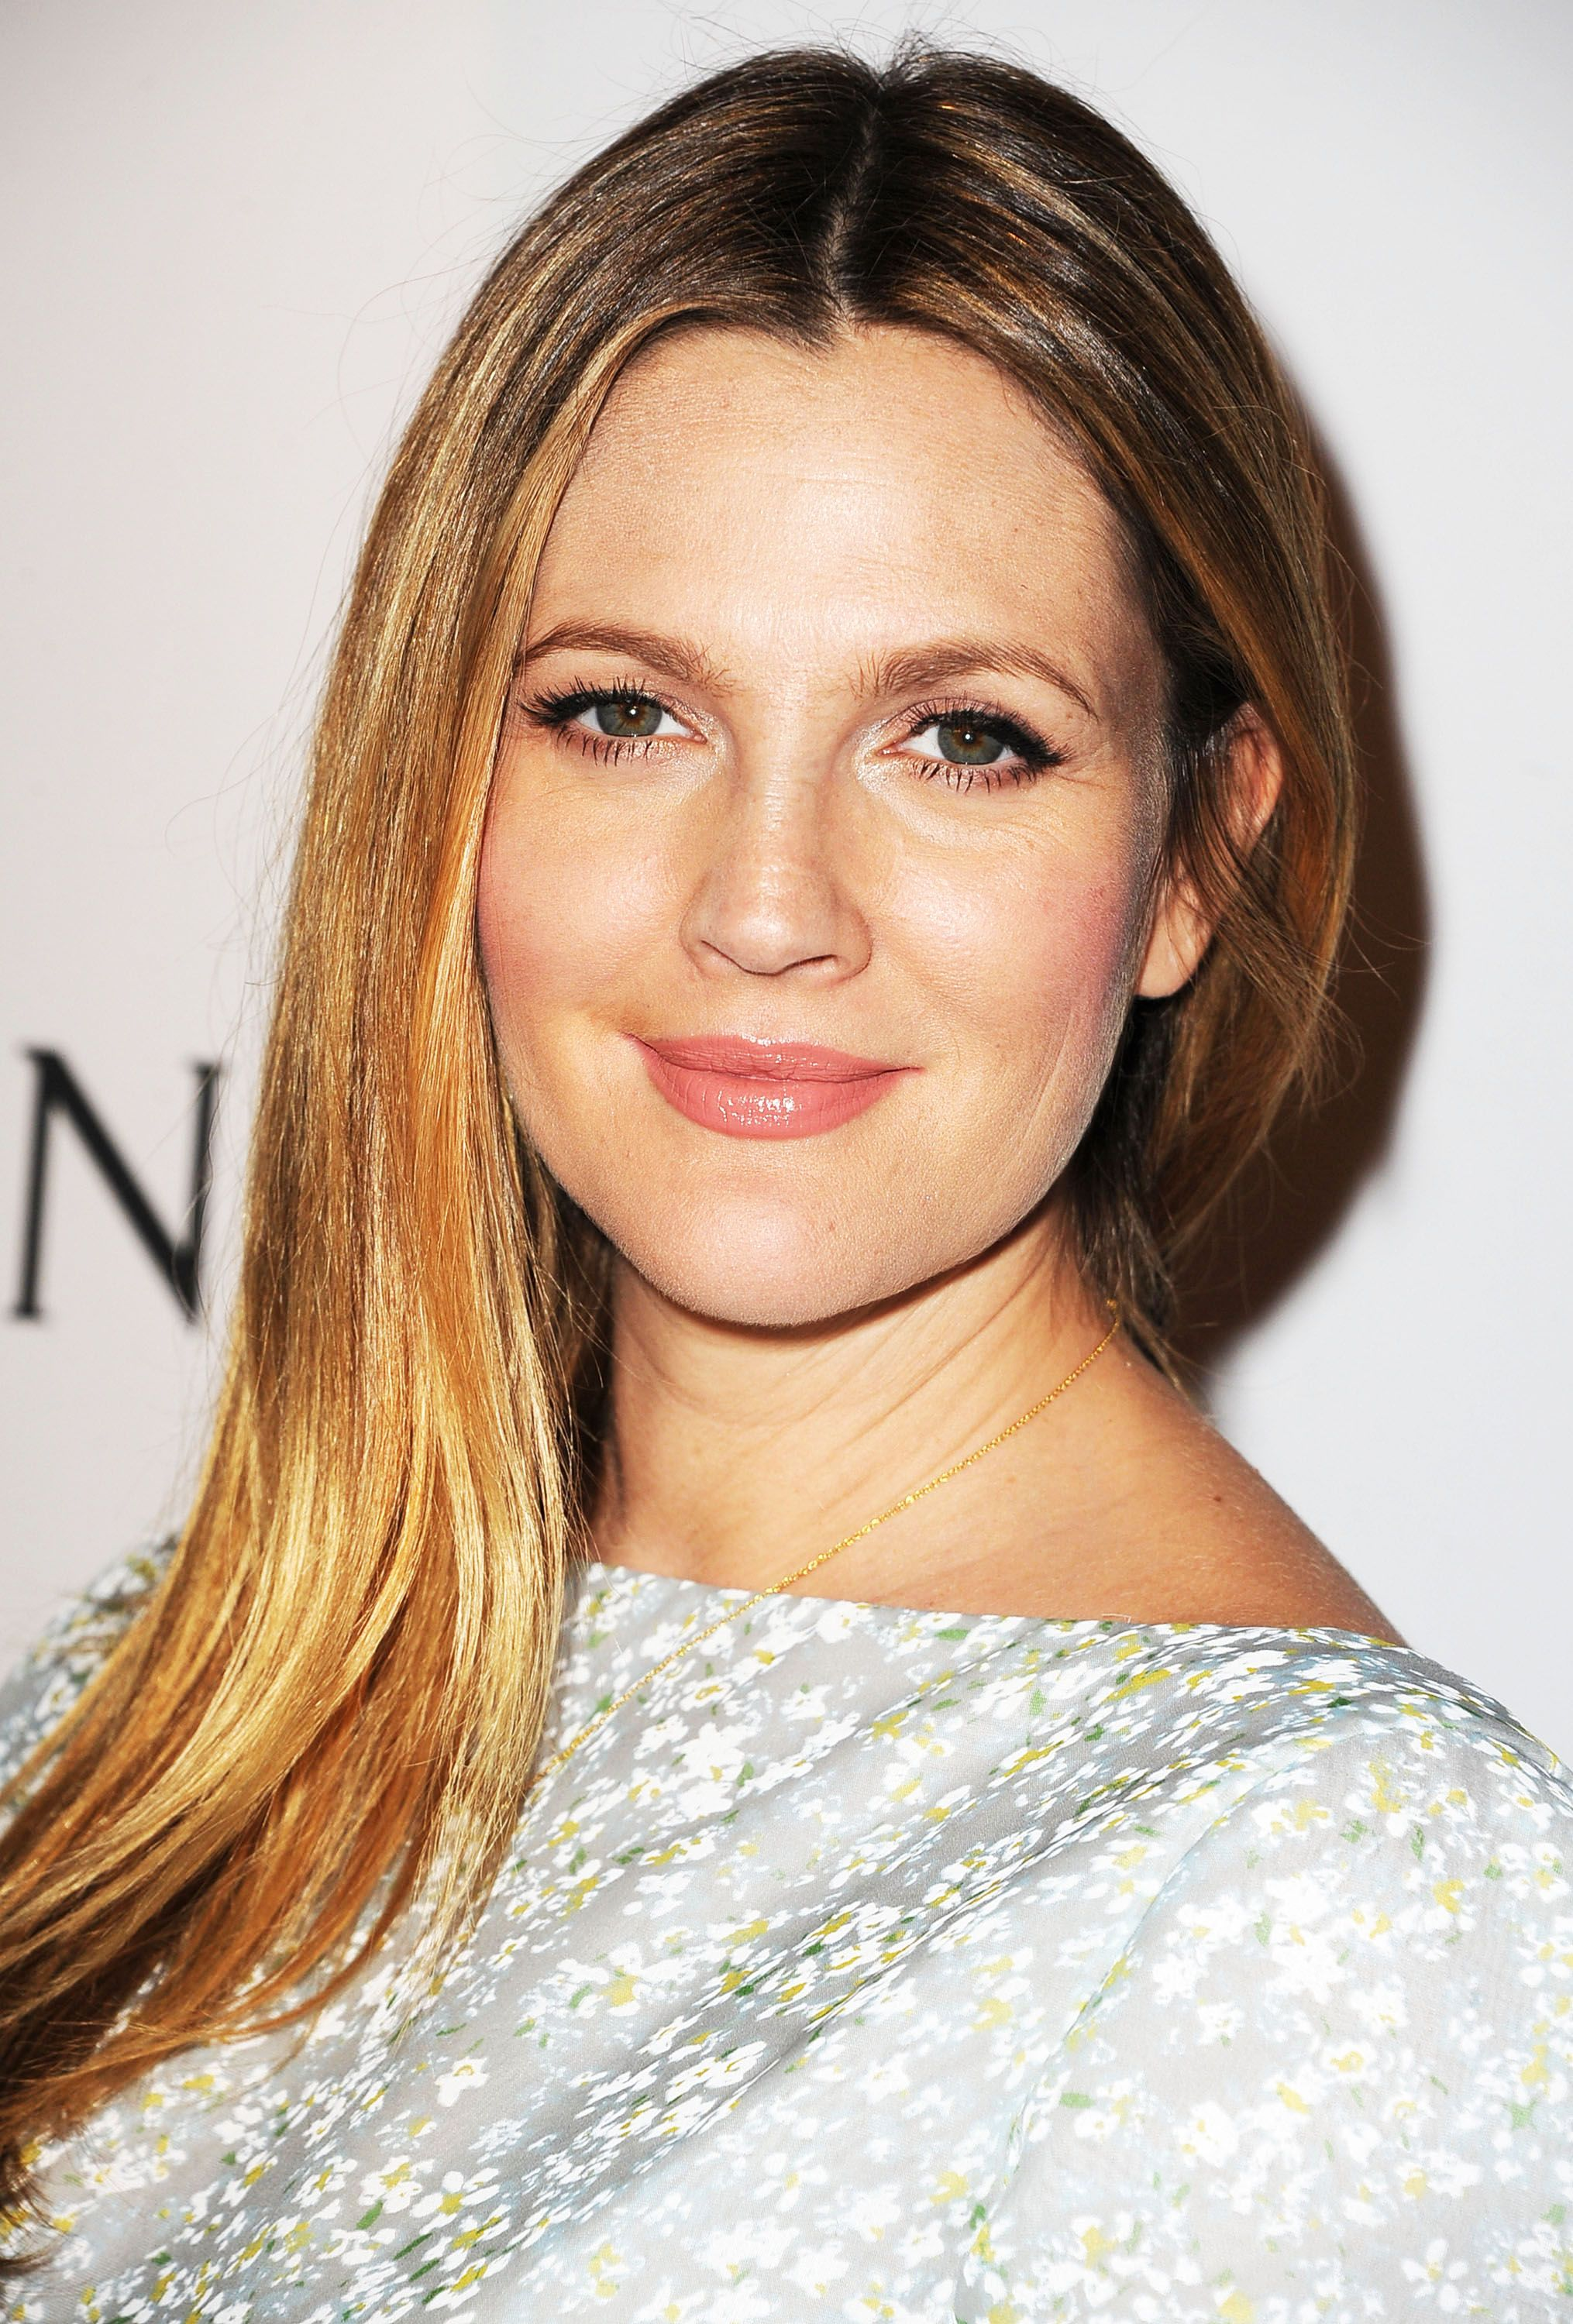 Fashion week Drew Barrymore's Impression of Her Kid Is Hilarious for lady